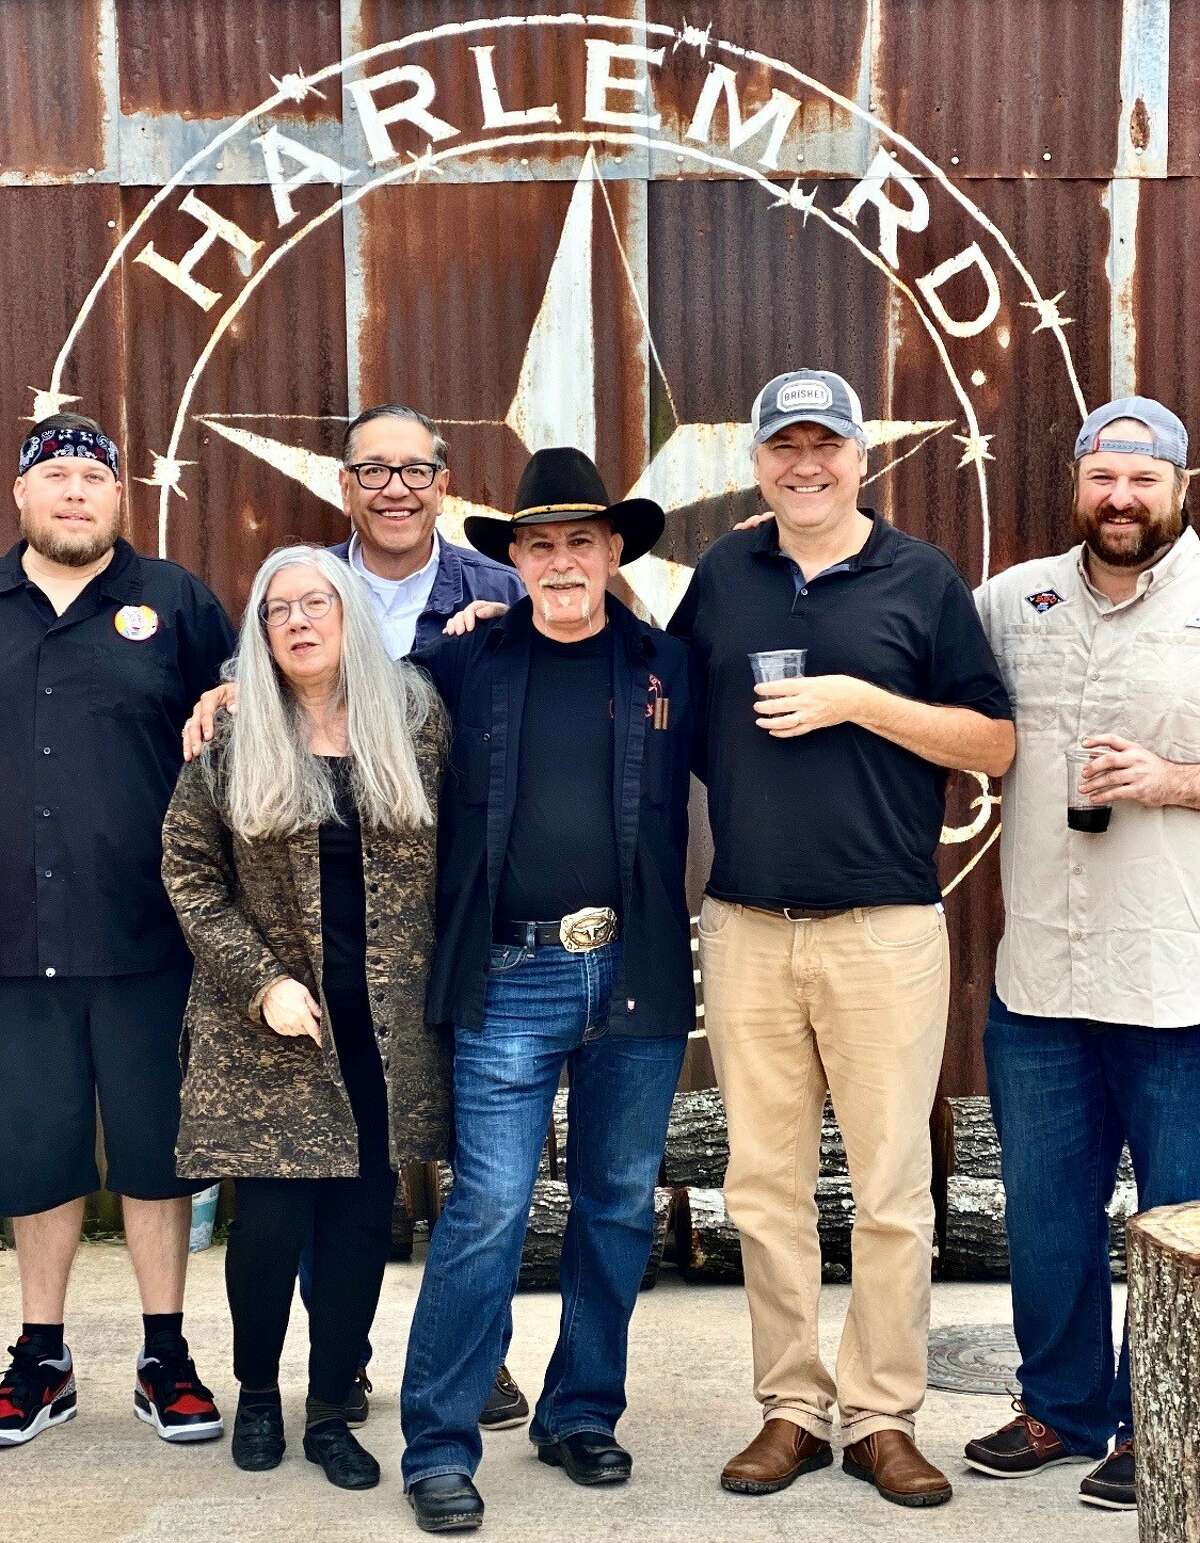 The BBQ State of Mind Podcast visited Harlem Road Texas BBQ in Richmond to talk about the growth of craft barbecue in the Katy area. Left to right: Chef Randy Duncan of Daddy Duncan's BBQ in Katy; Chronicle restaurant critic Alison Cook;Chronicle food editor Greg Morago; chef Ara Malekian of Harlem Road; Chronicle barbecue columnist J.C. Reid; and pitmaster Brett Jackson of Brett's BBQ Shop in Katy.